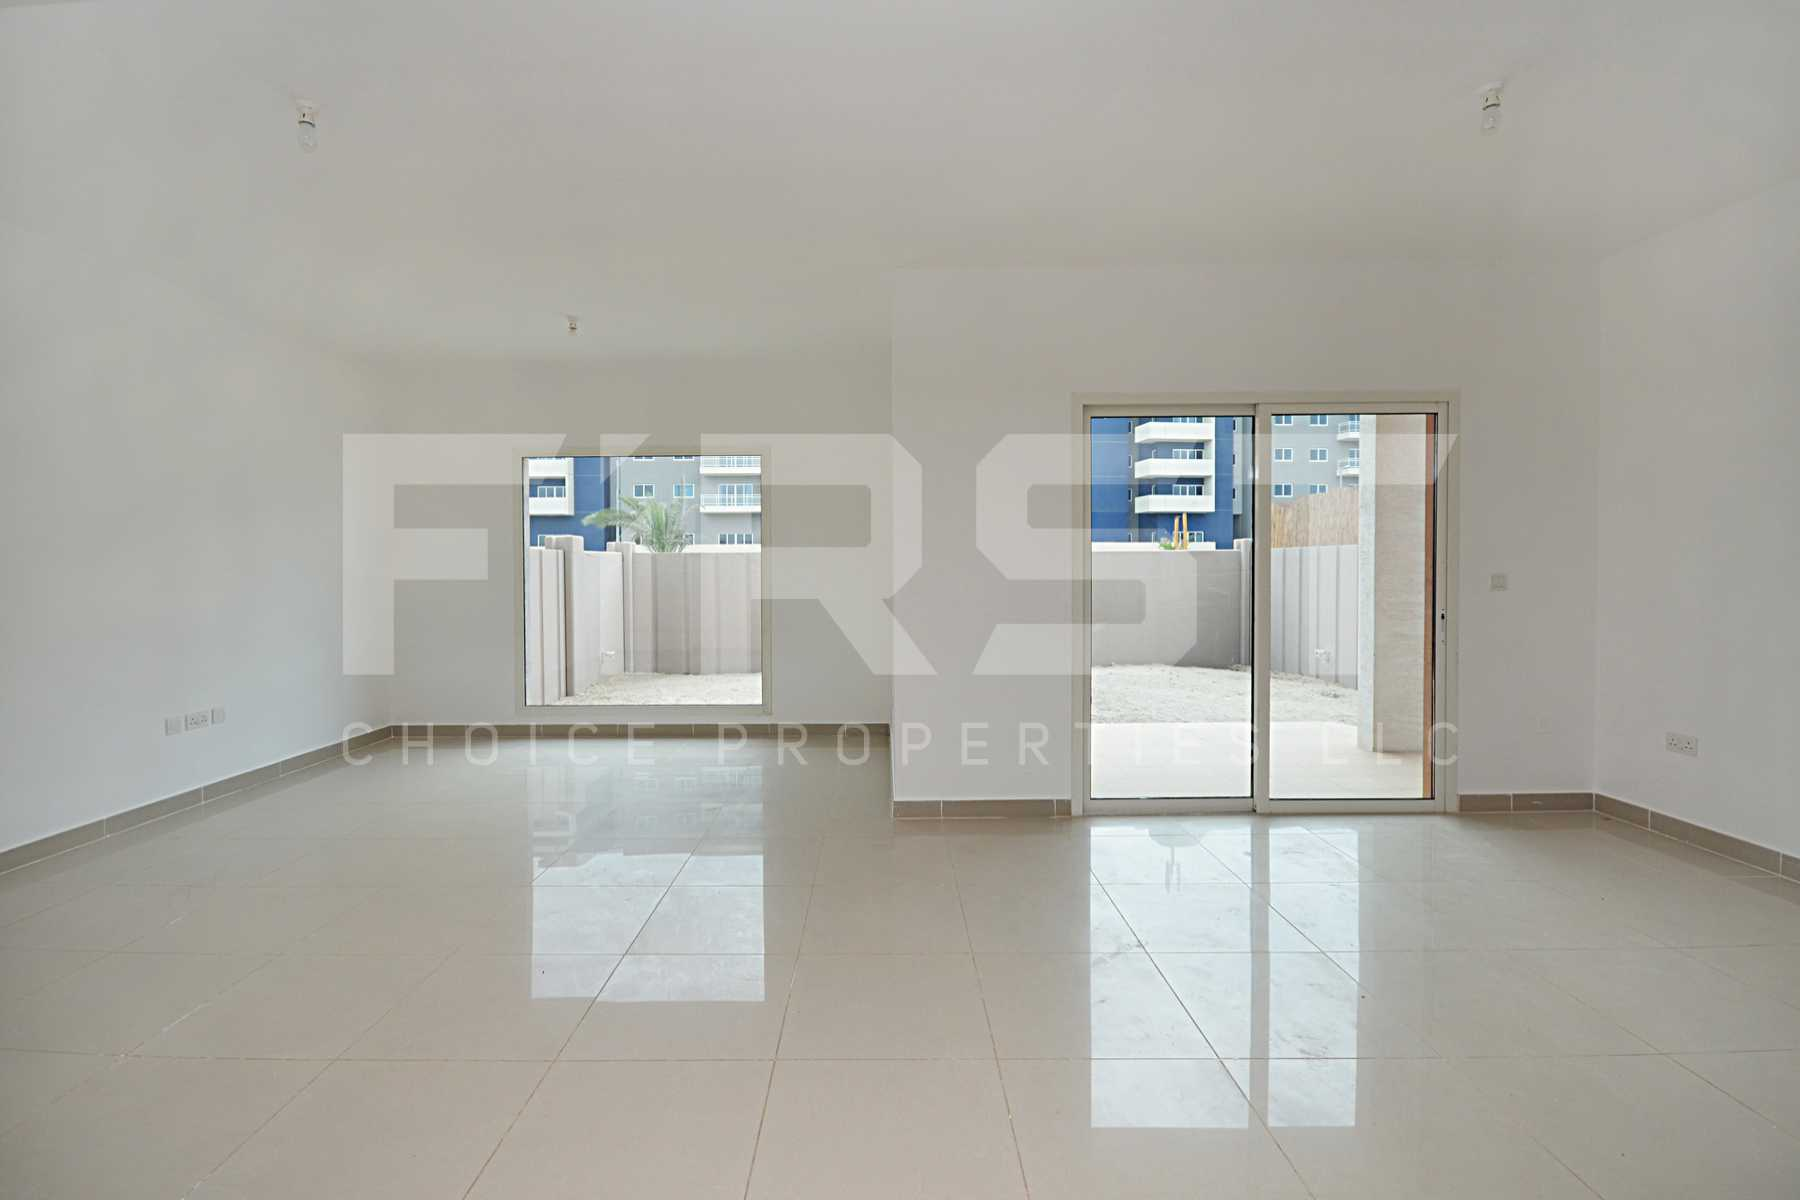 4 Bedroom Villa in Al Reef Villas Al Reef Abu Dhabi UAE 265.5 sq.m 2858 sq.ft (11).jpg